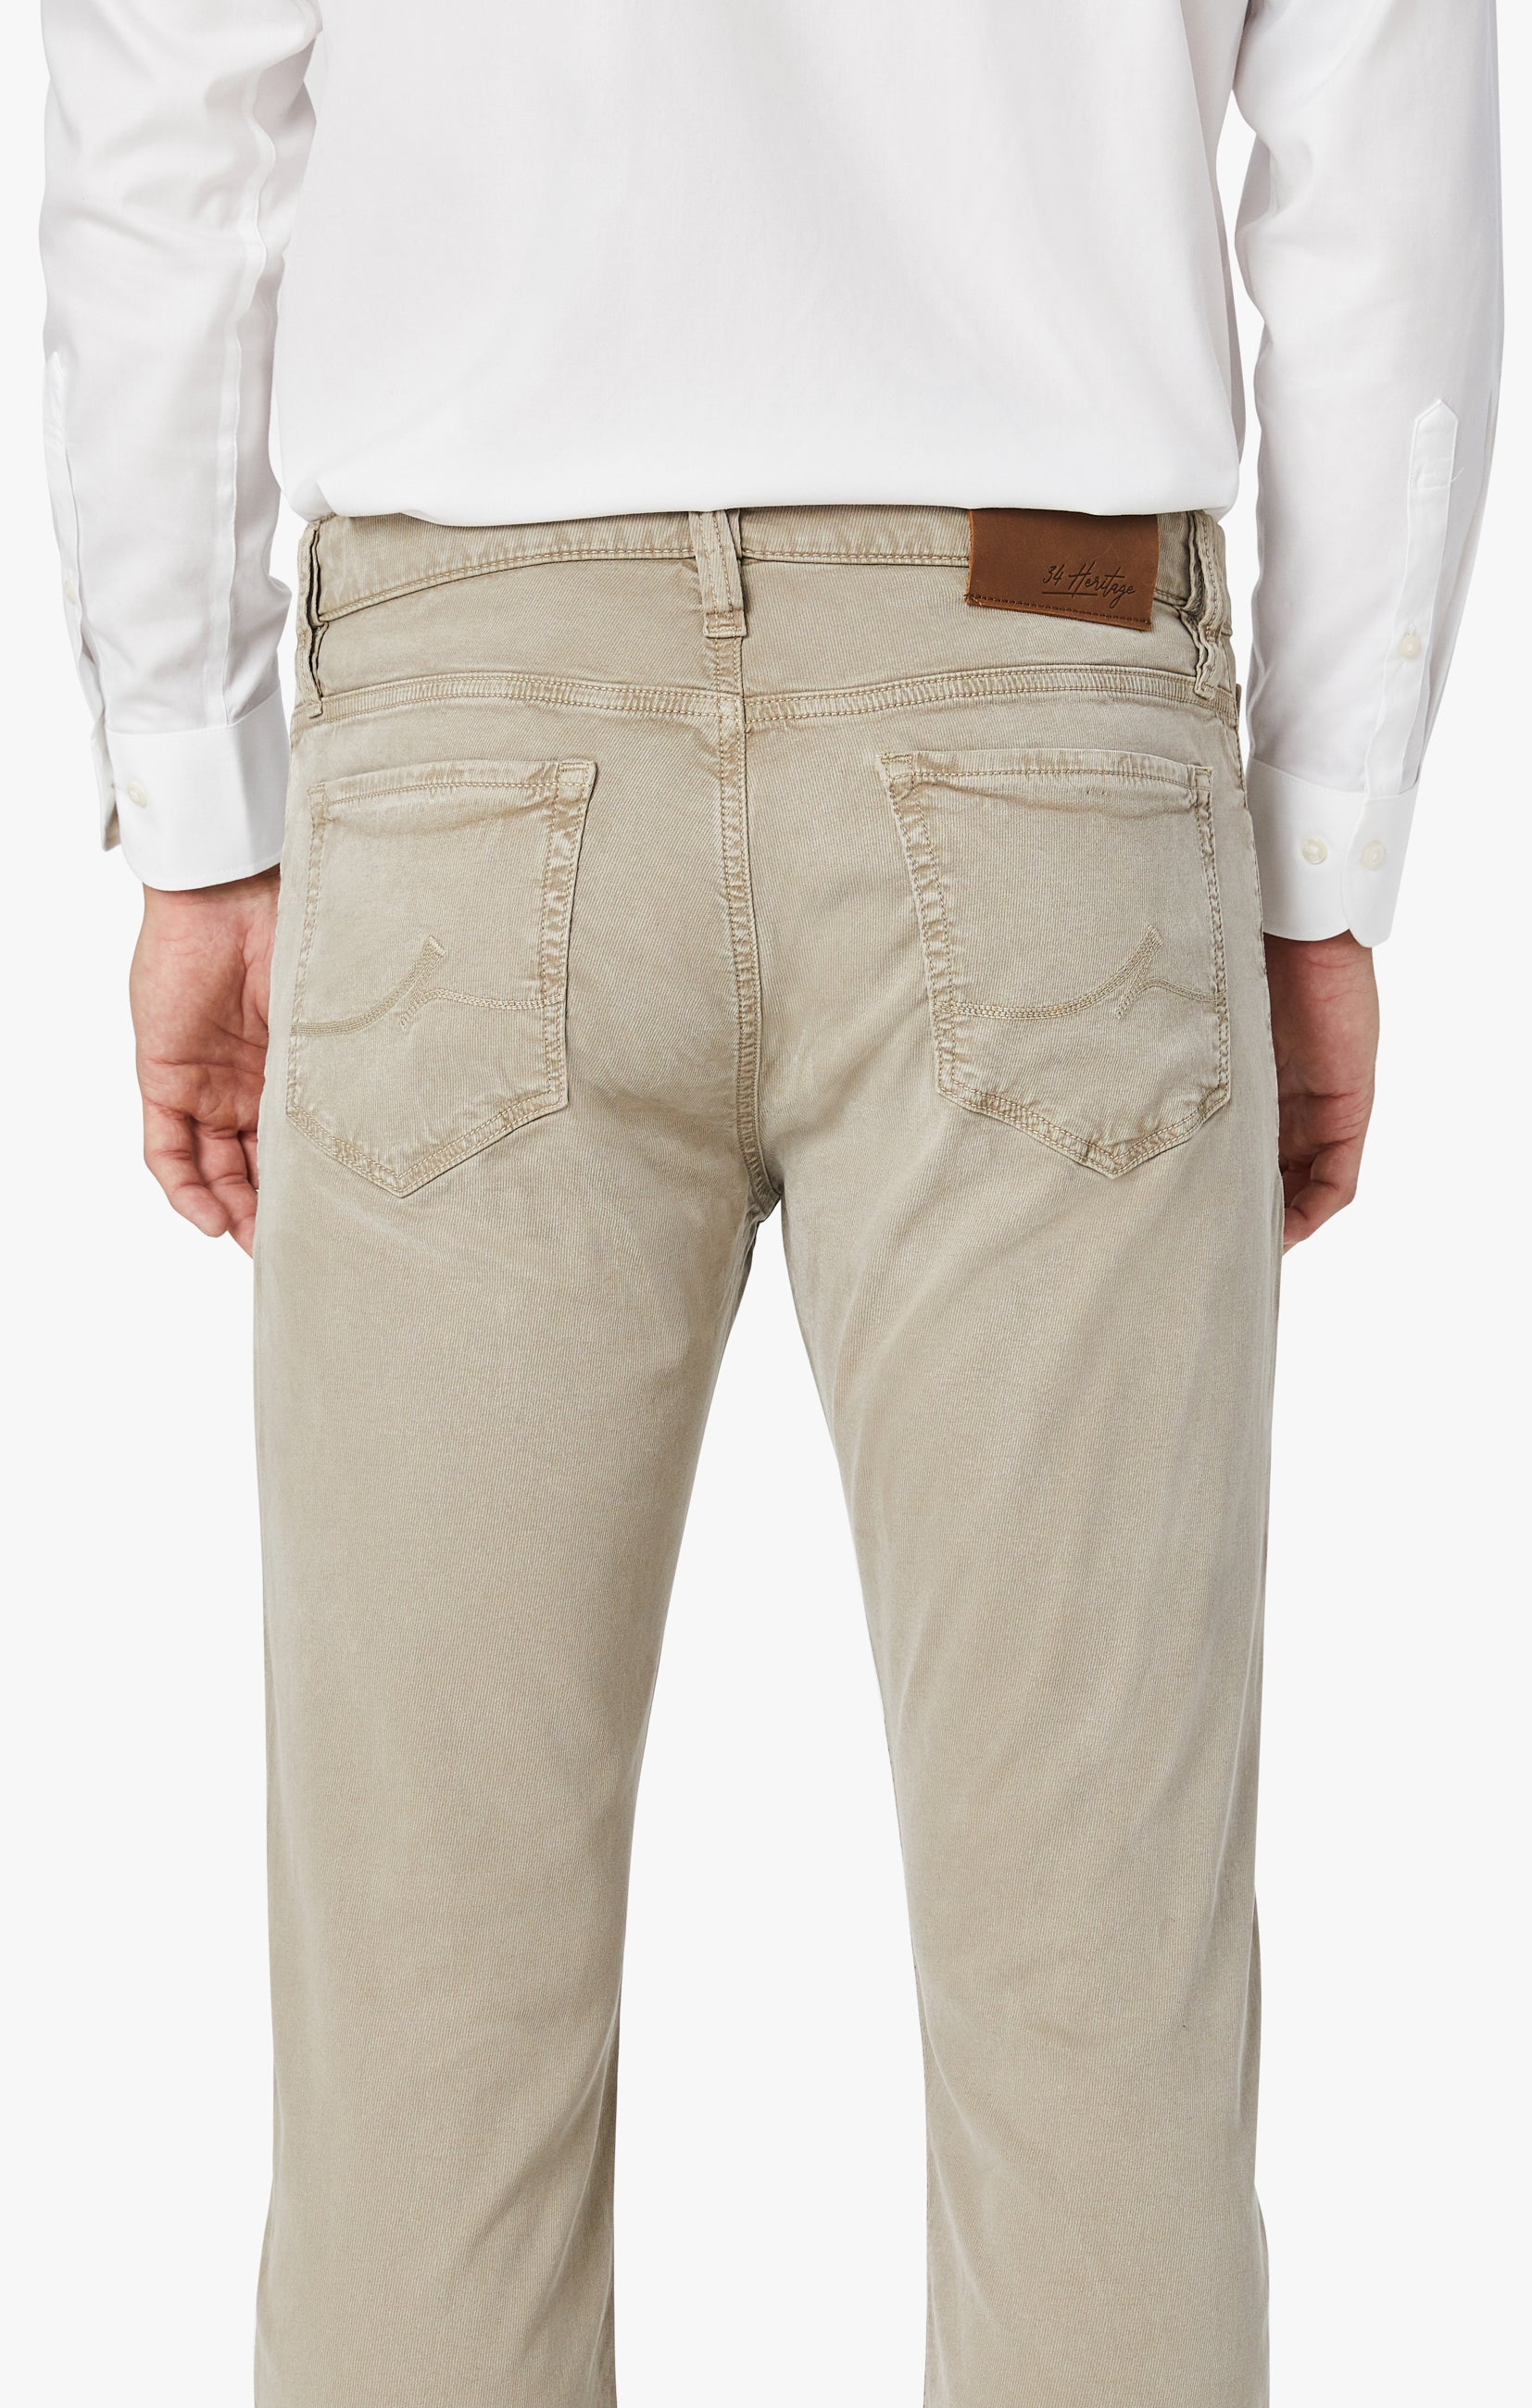 Courage Straight Leg Pants In Mushroom Soft Touch Image 4